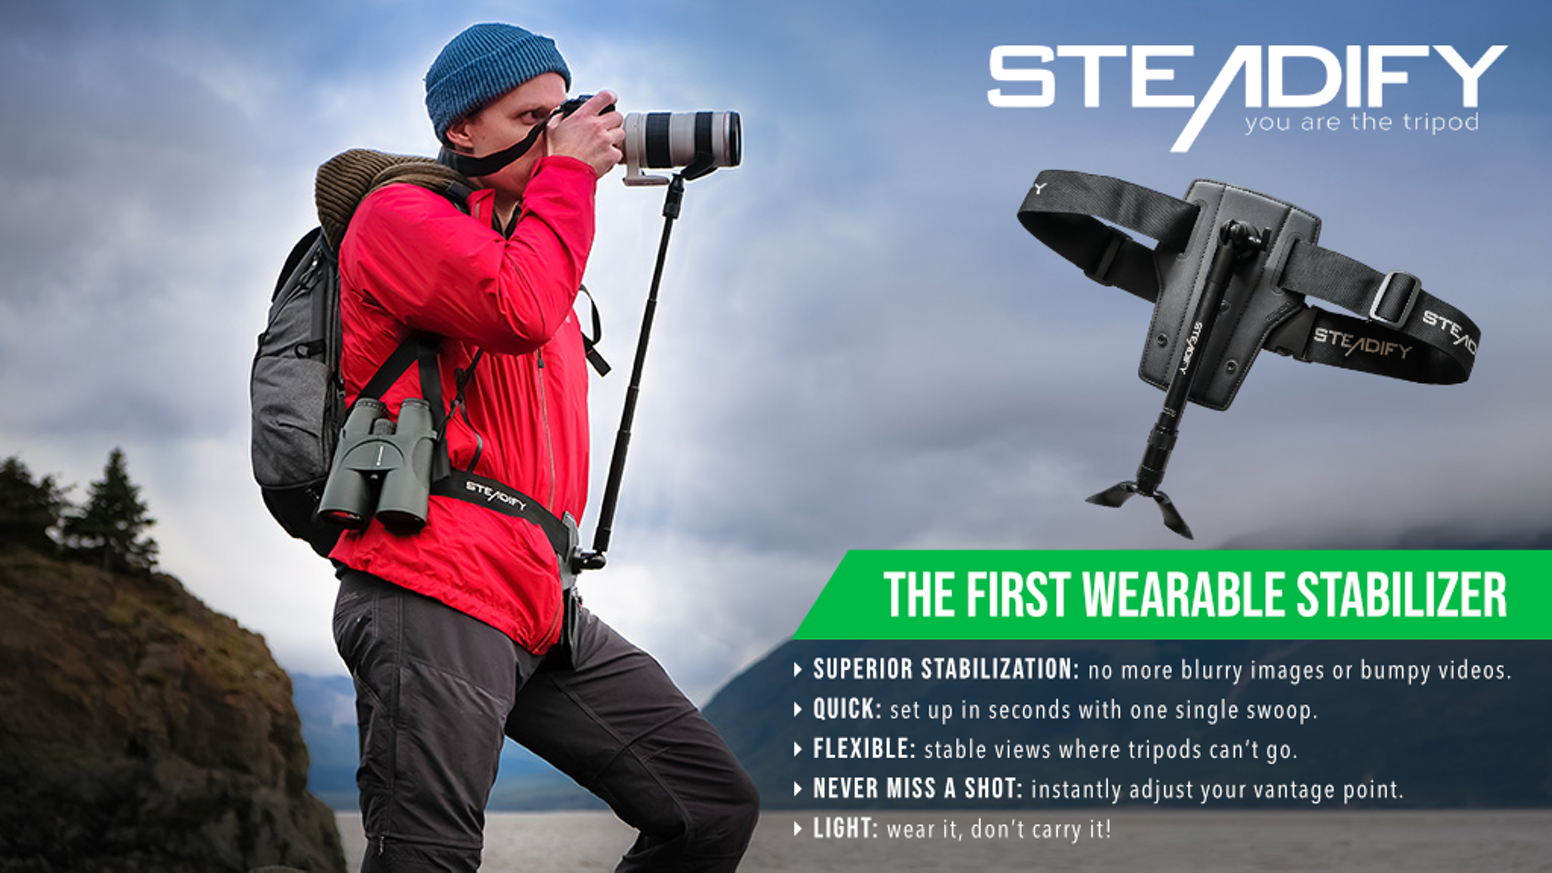 STEADIFY - you are the tripod. The first wearable stabilizer for cameras, binoculars, scopes. No more blurry images or missed moments.